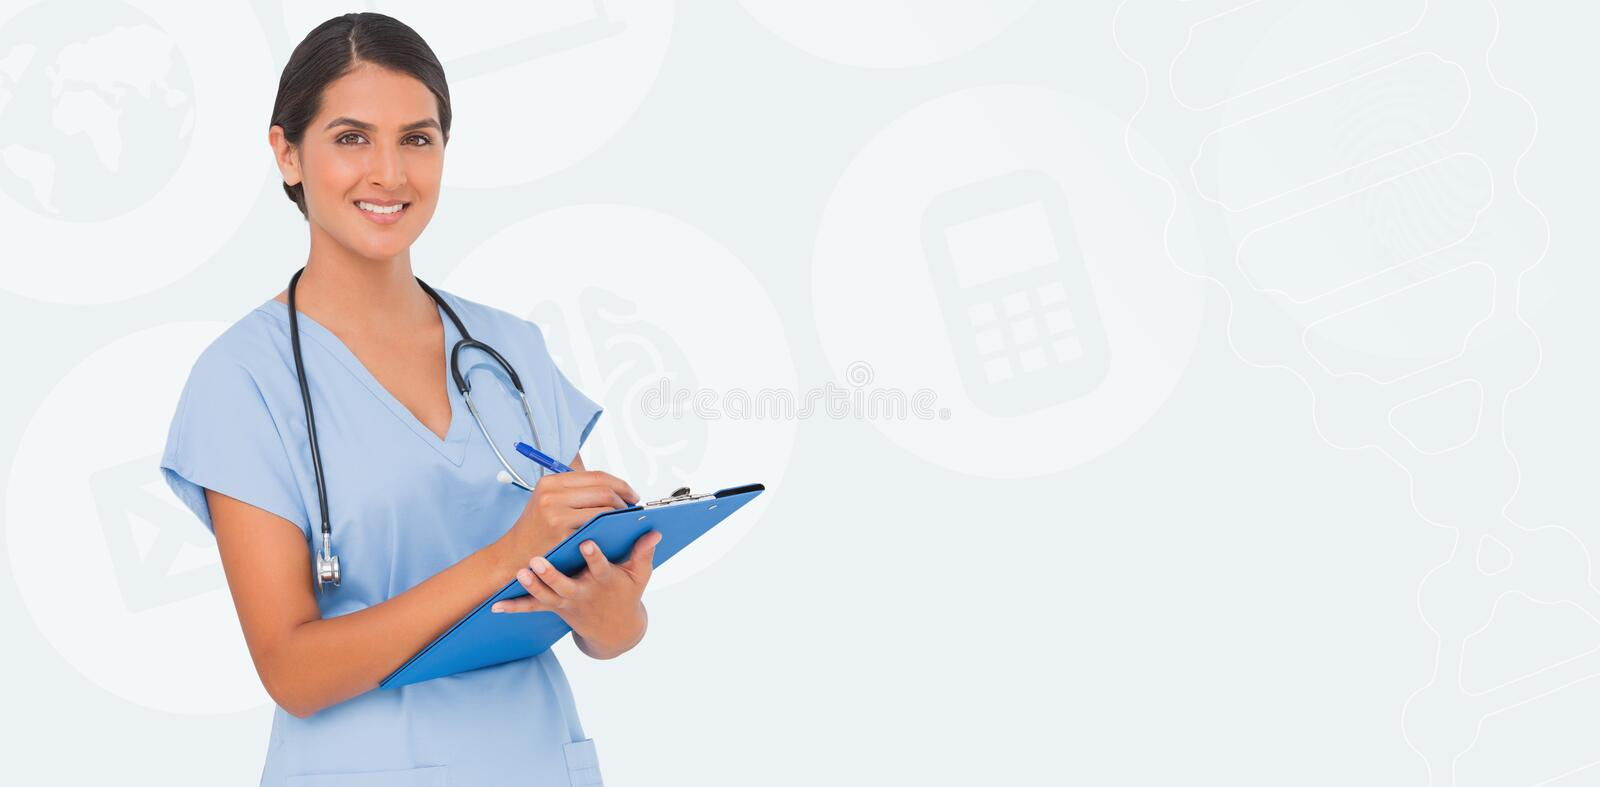 355 Nurse Wallpaper Photos Free Royalty Free Stock Photos From Dreamstime